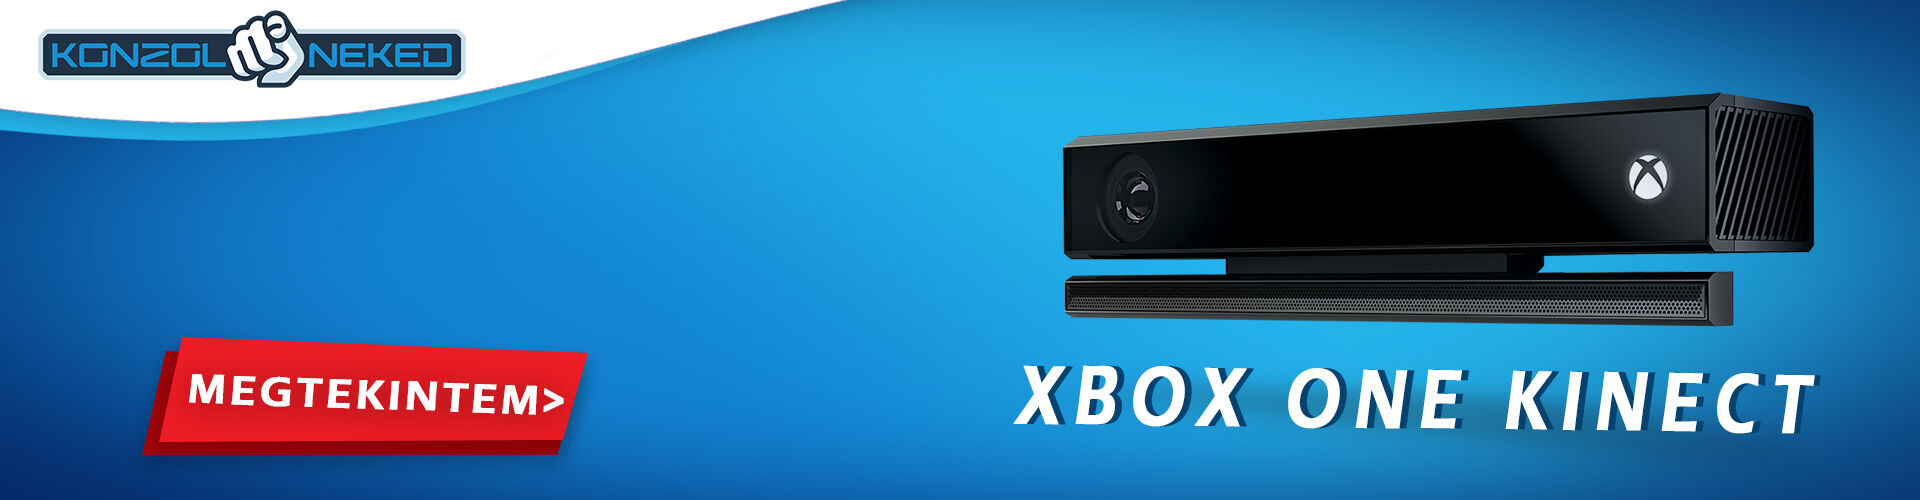 xbox one kinect banner